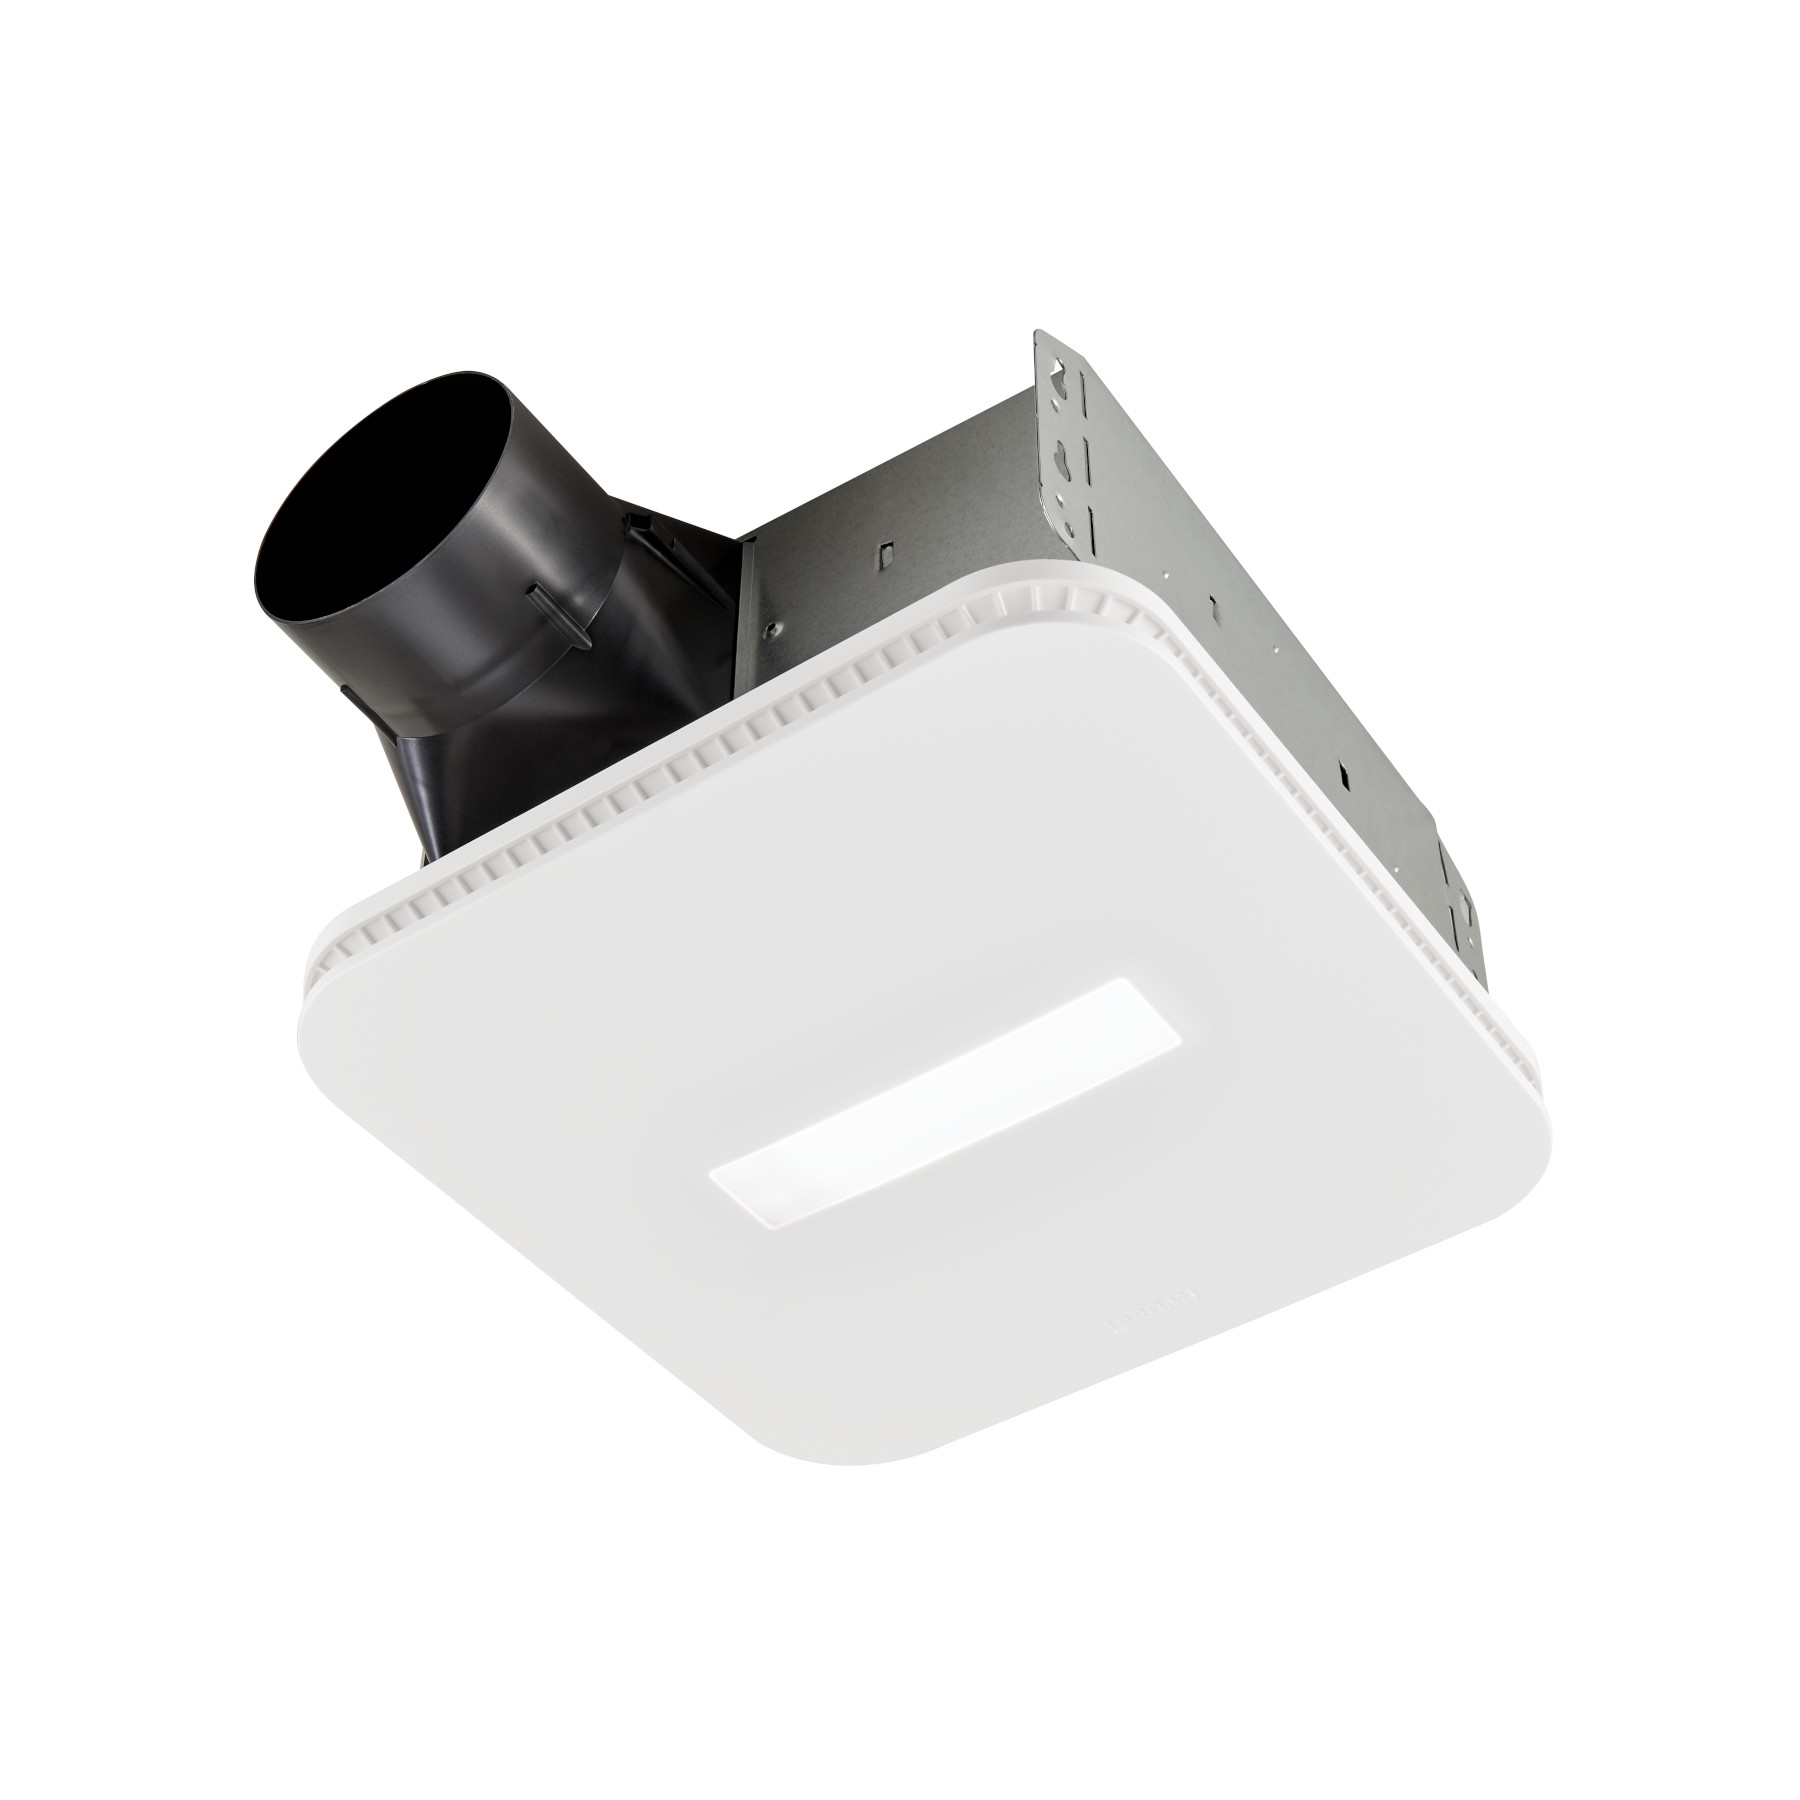 Aern110dcsl Nutone Roomside Dc Series 110 Cfm 0 9 Sones Humidity Sensing Ventilation Fan Light With Cleancover